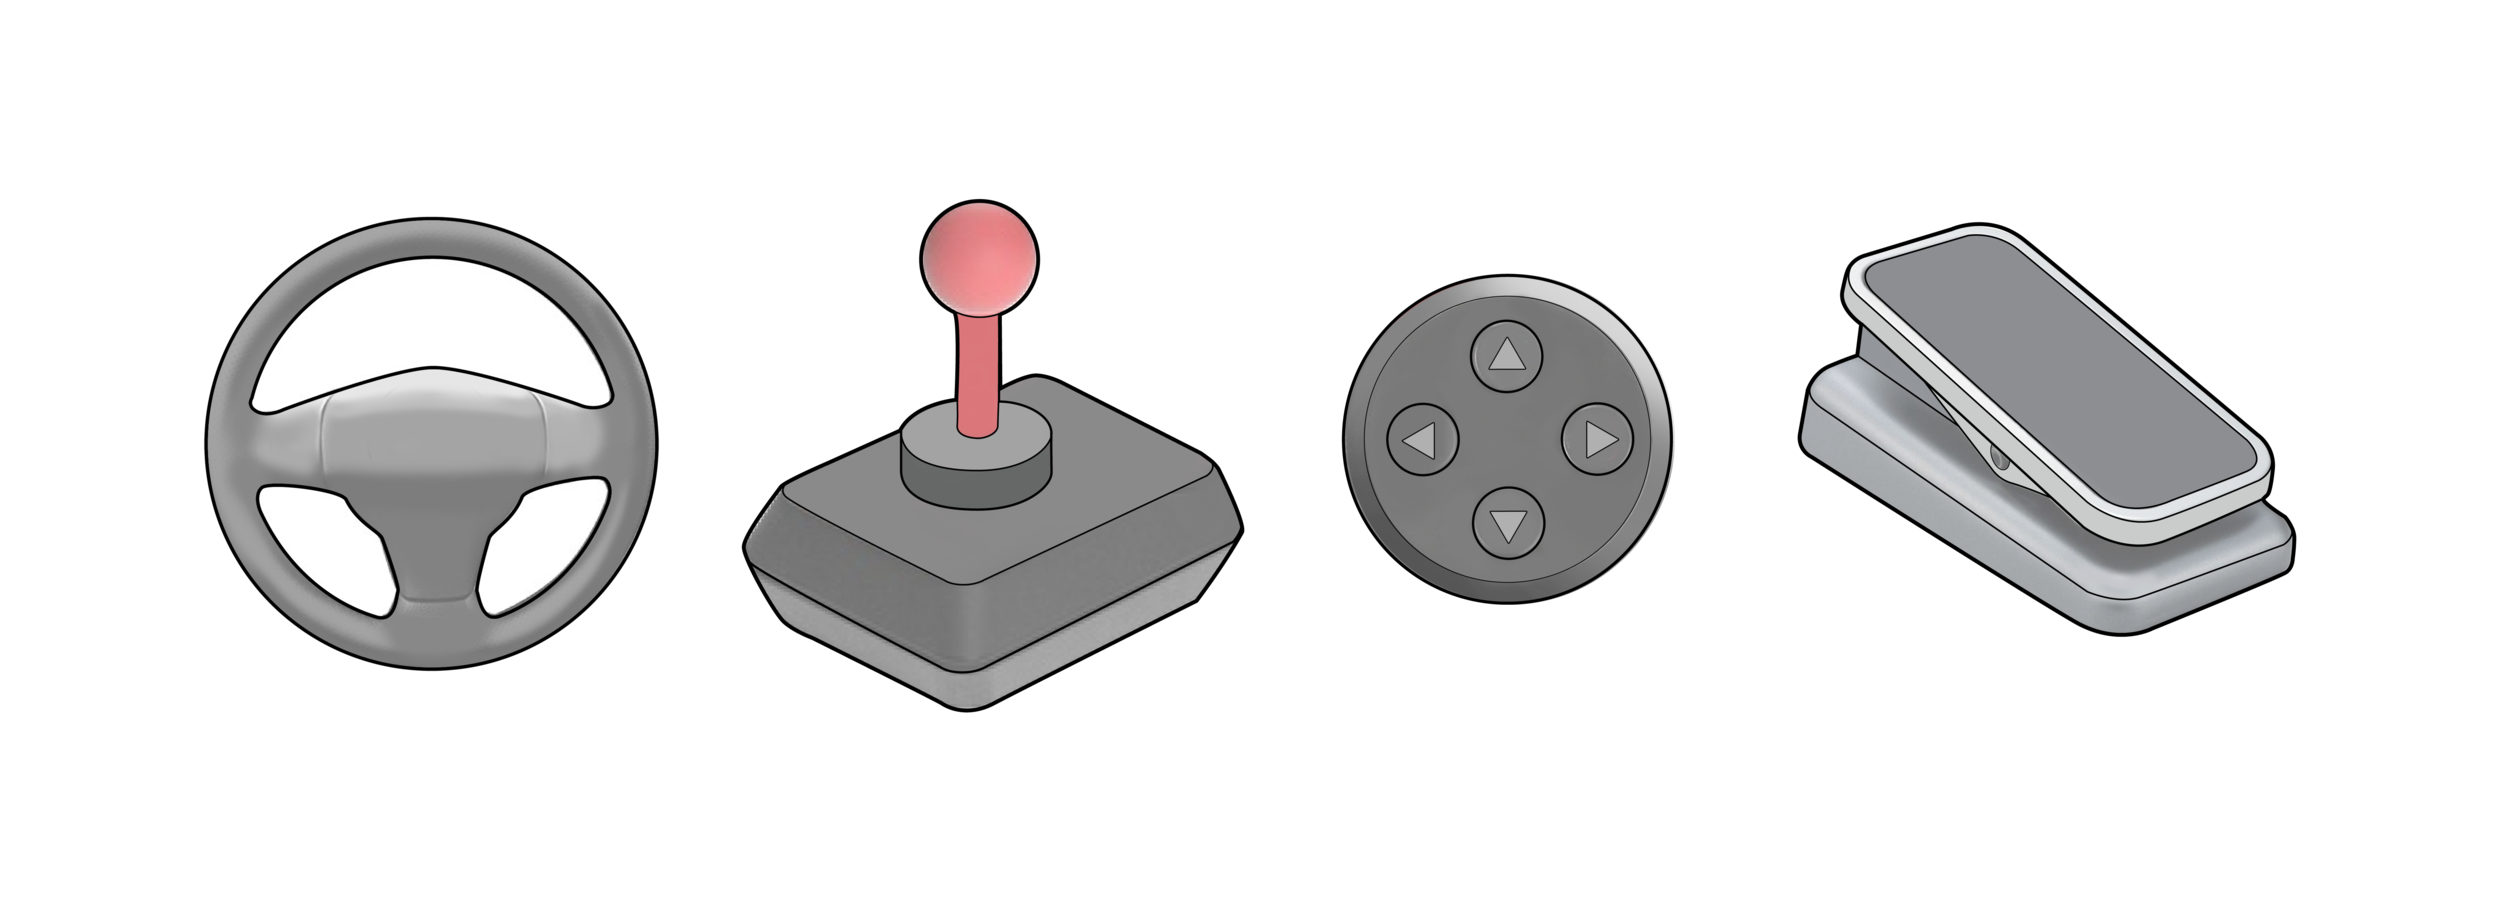 Examples of different physical controls that we custom integrate into the virtual experience.